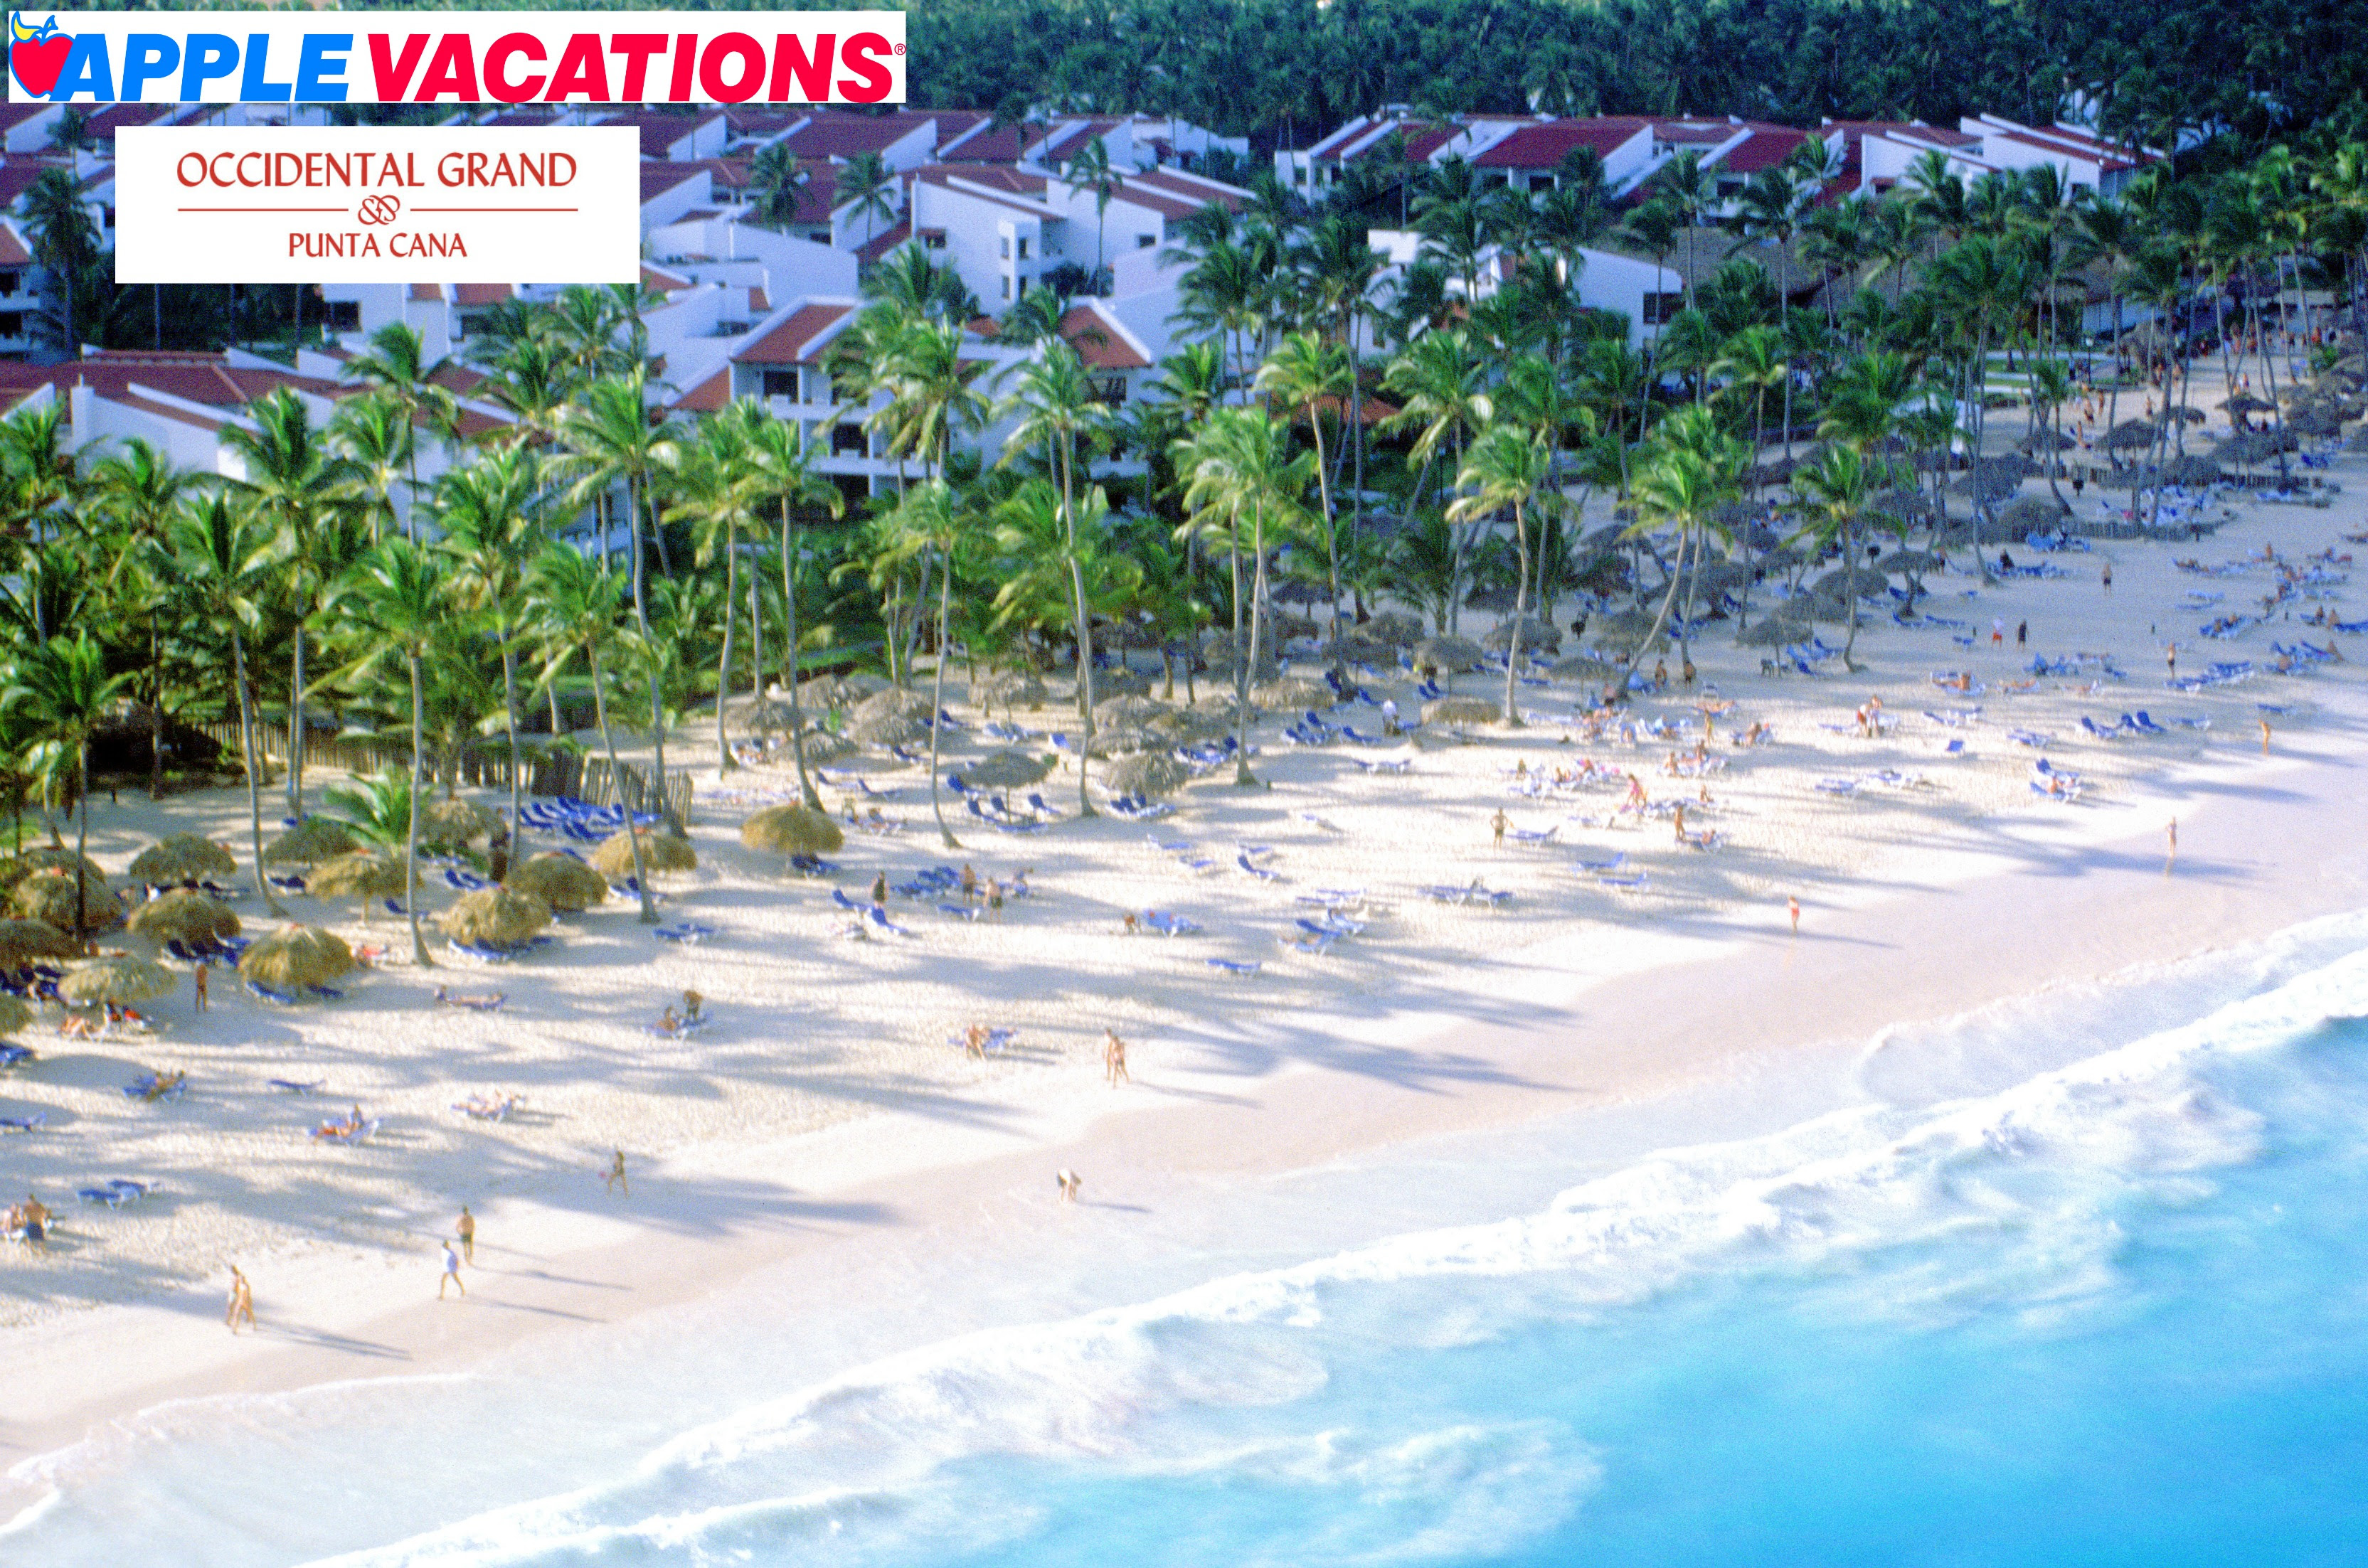 CWTS Apple Vacations All Inclusive Punta Cana Vacation